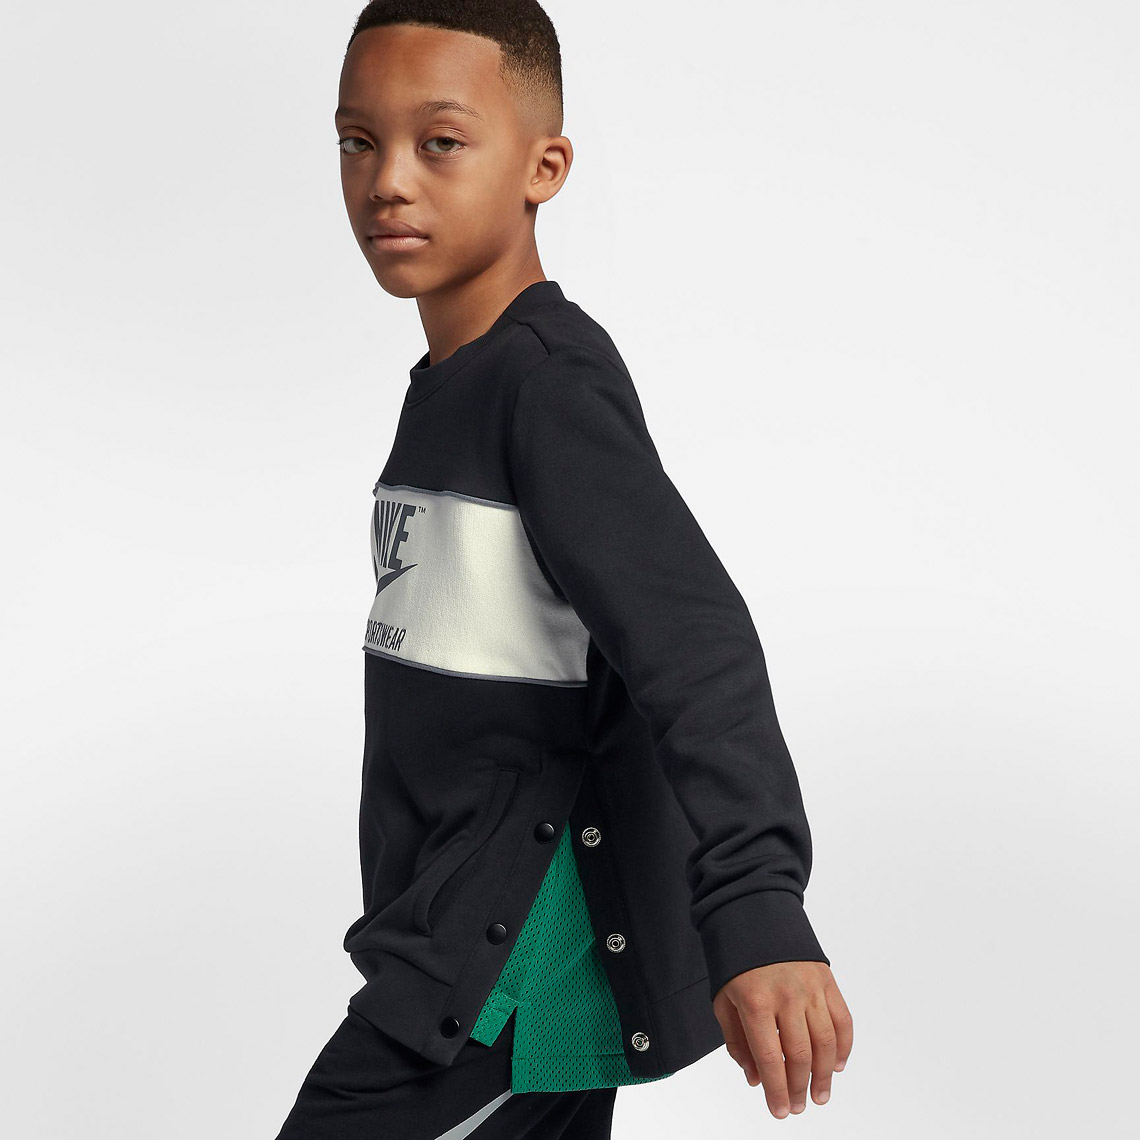 sportswear-big-kids-boys-long-sleeve-crew-top-nXAg4o